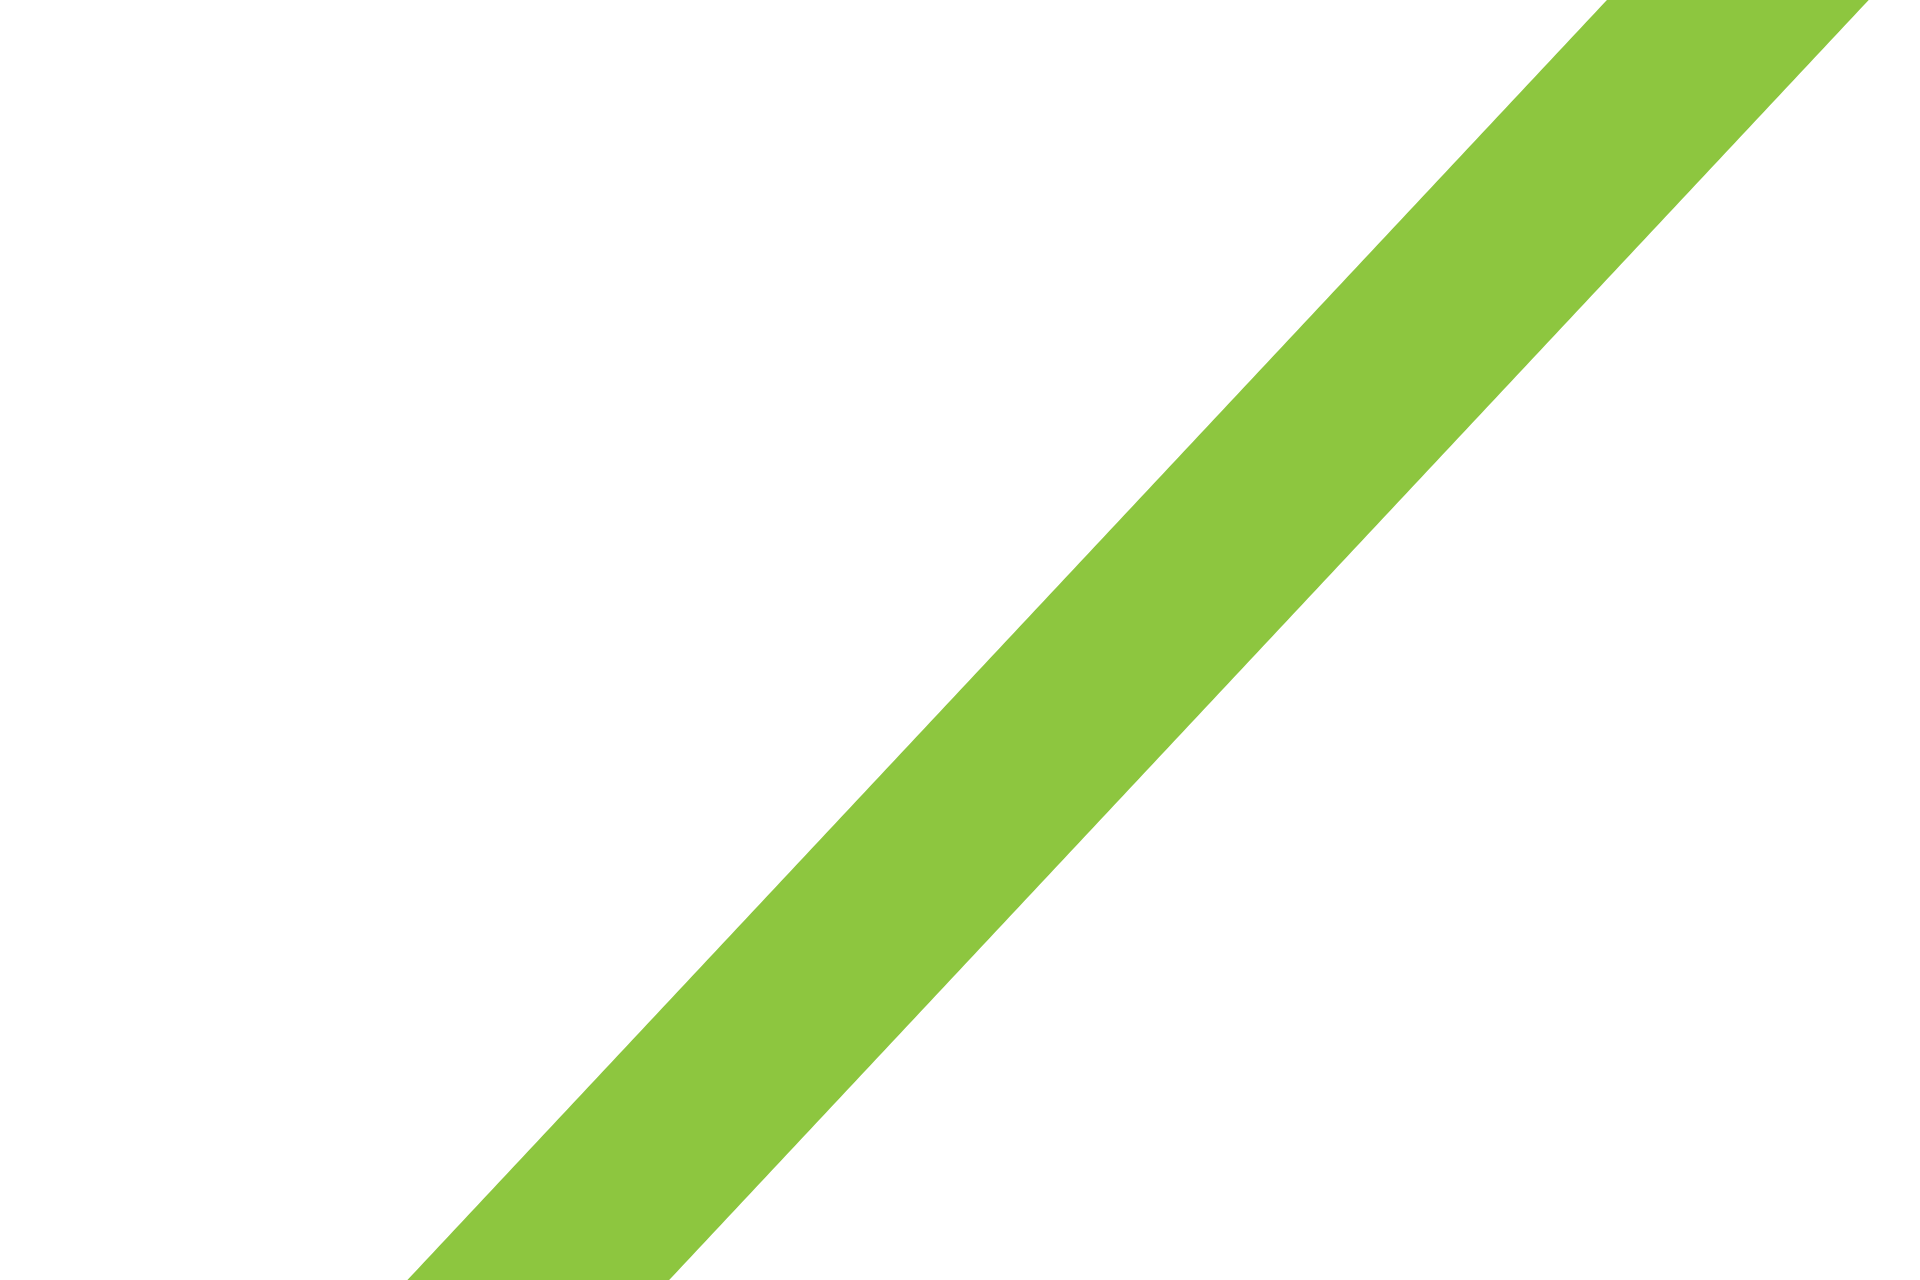 Green line png. Bus service vt nh